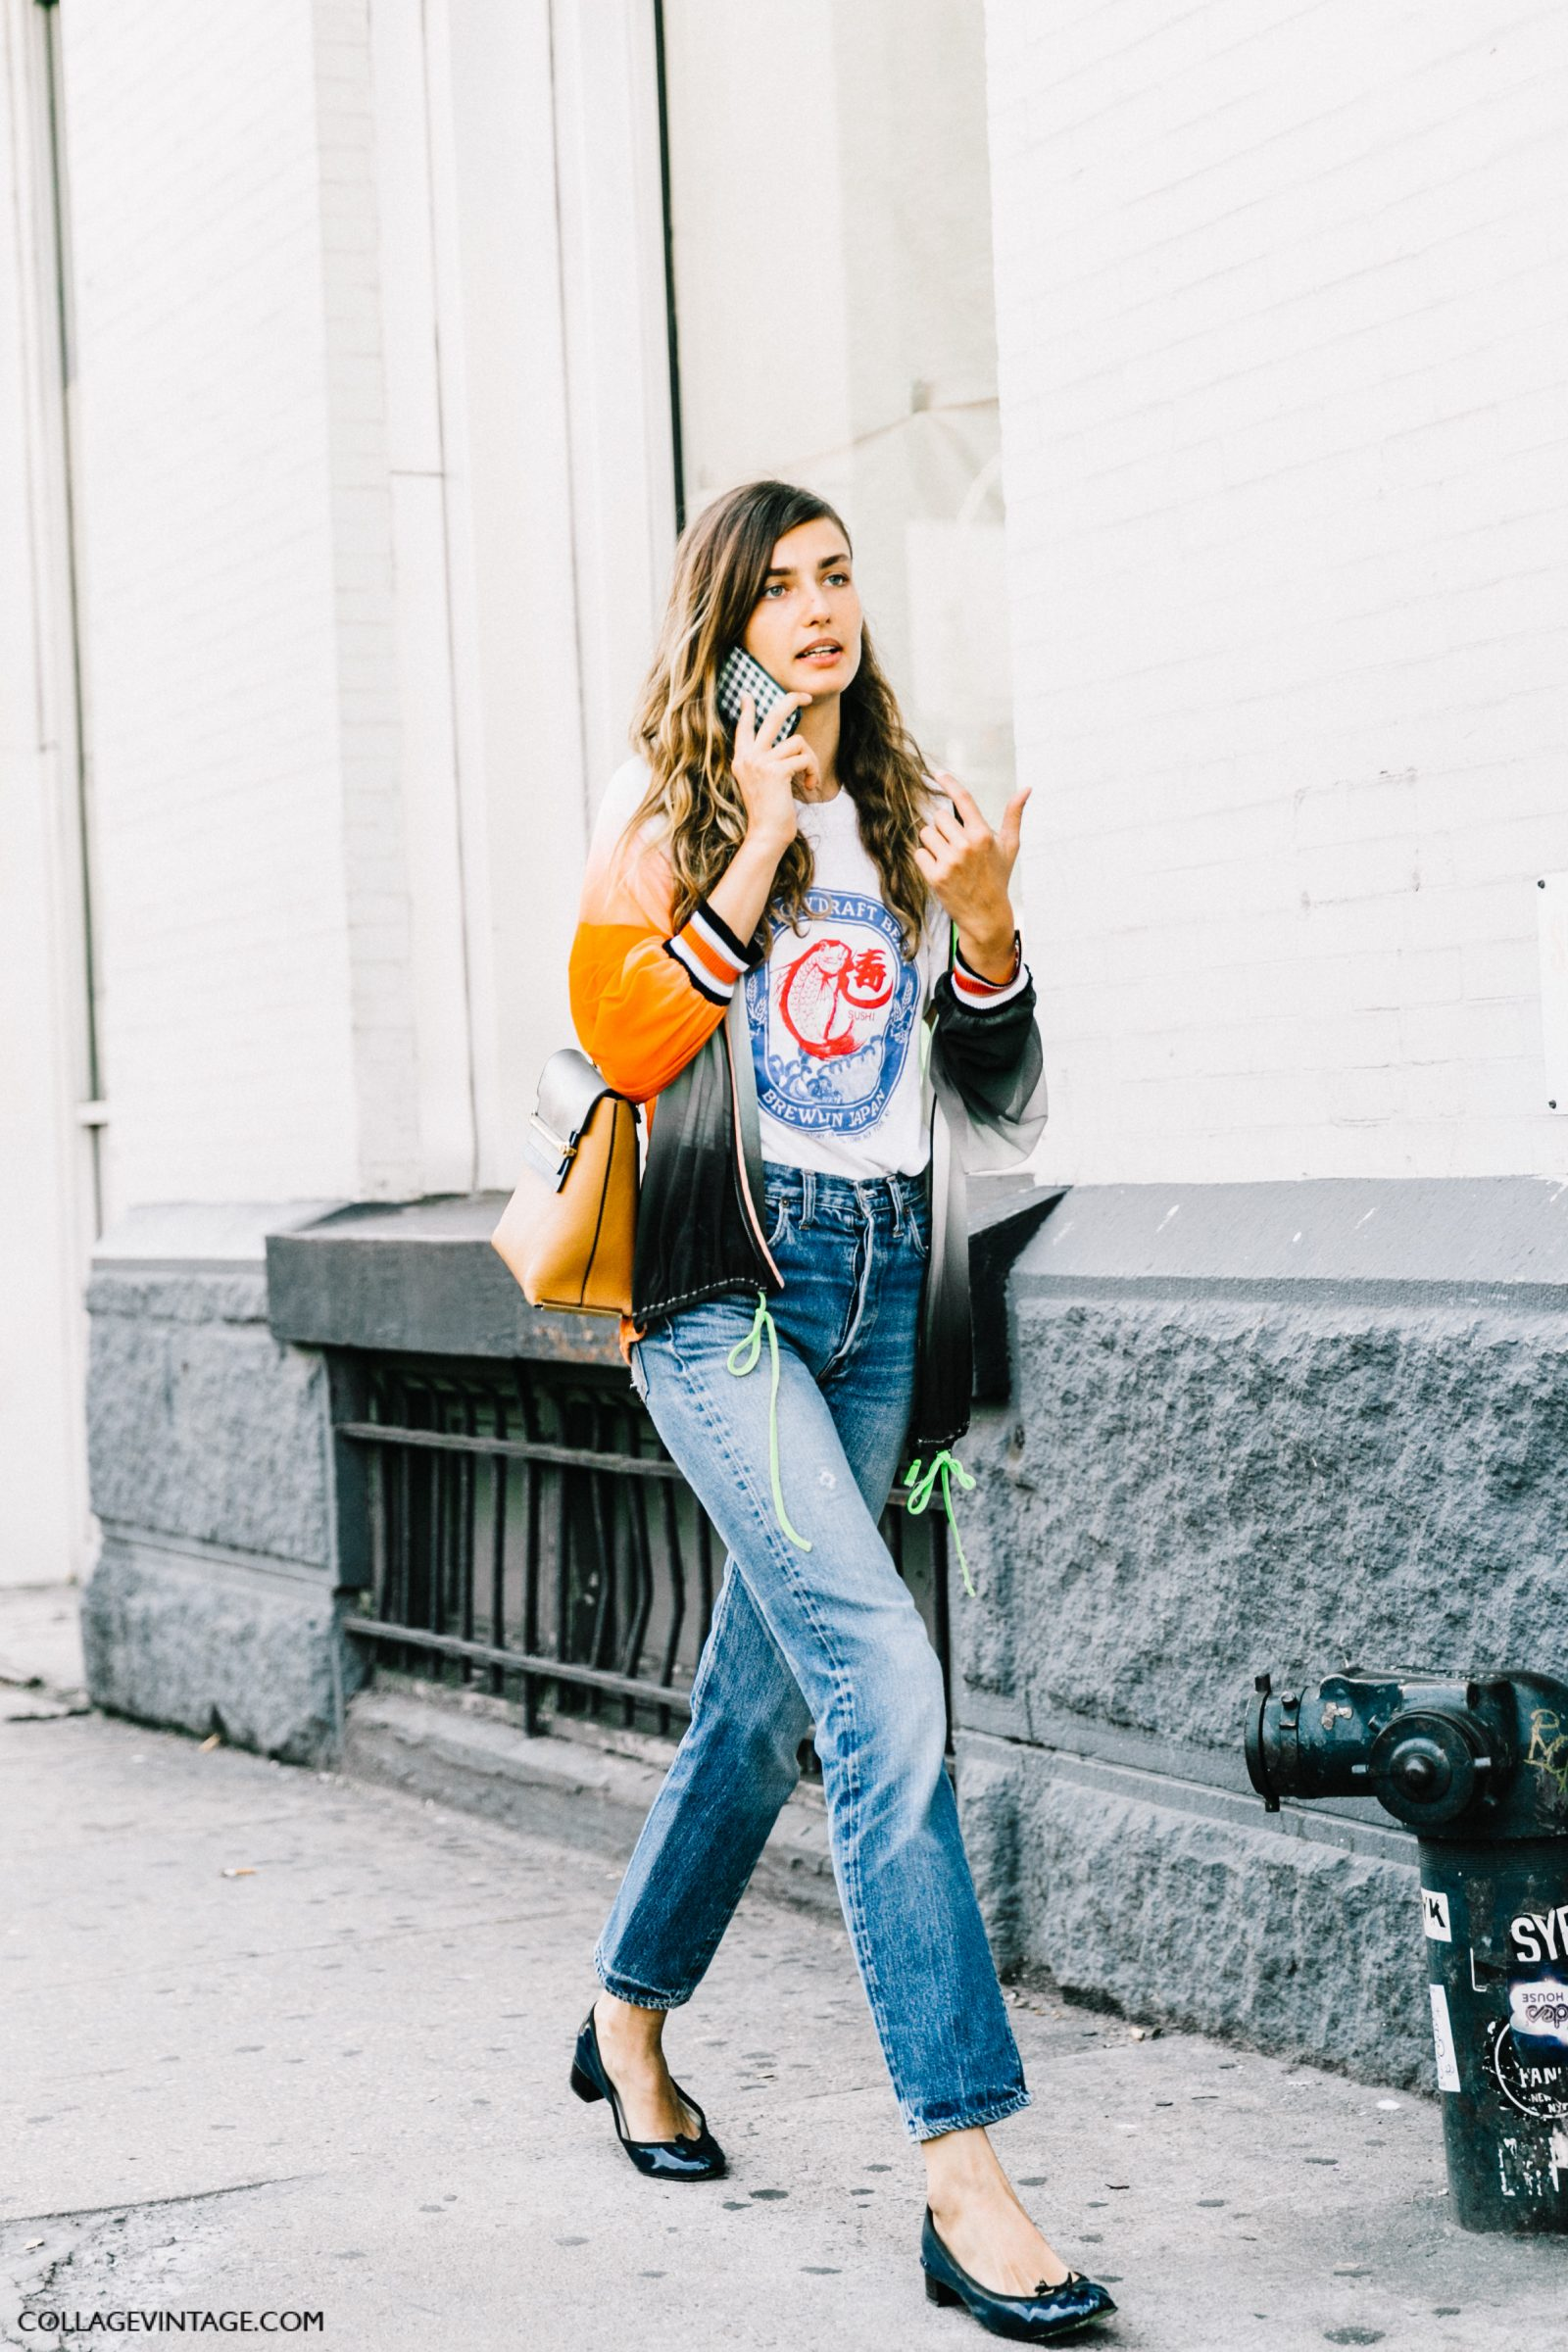 nyfw-new_york_fashion_week_ss17-street_style-outfits-collage_vintage-vintage-del_pozo-michael_kors-hugo_boss-103